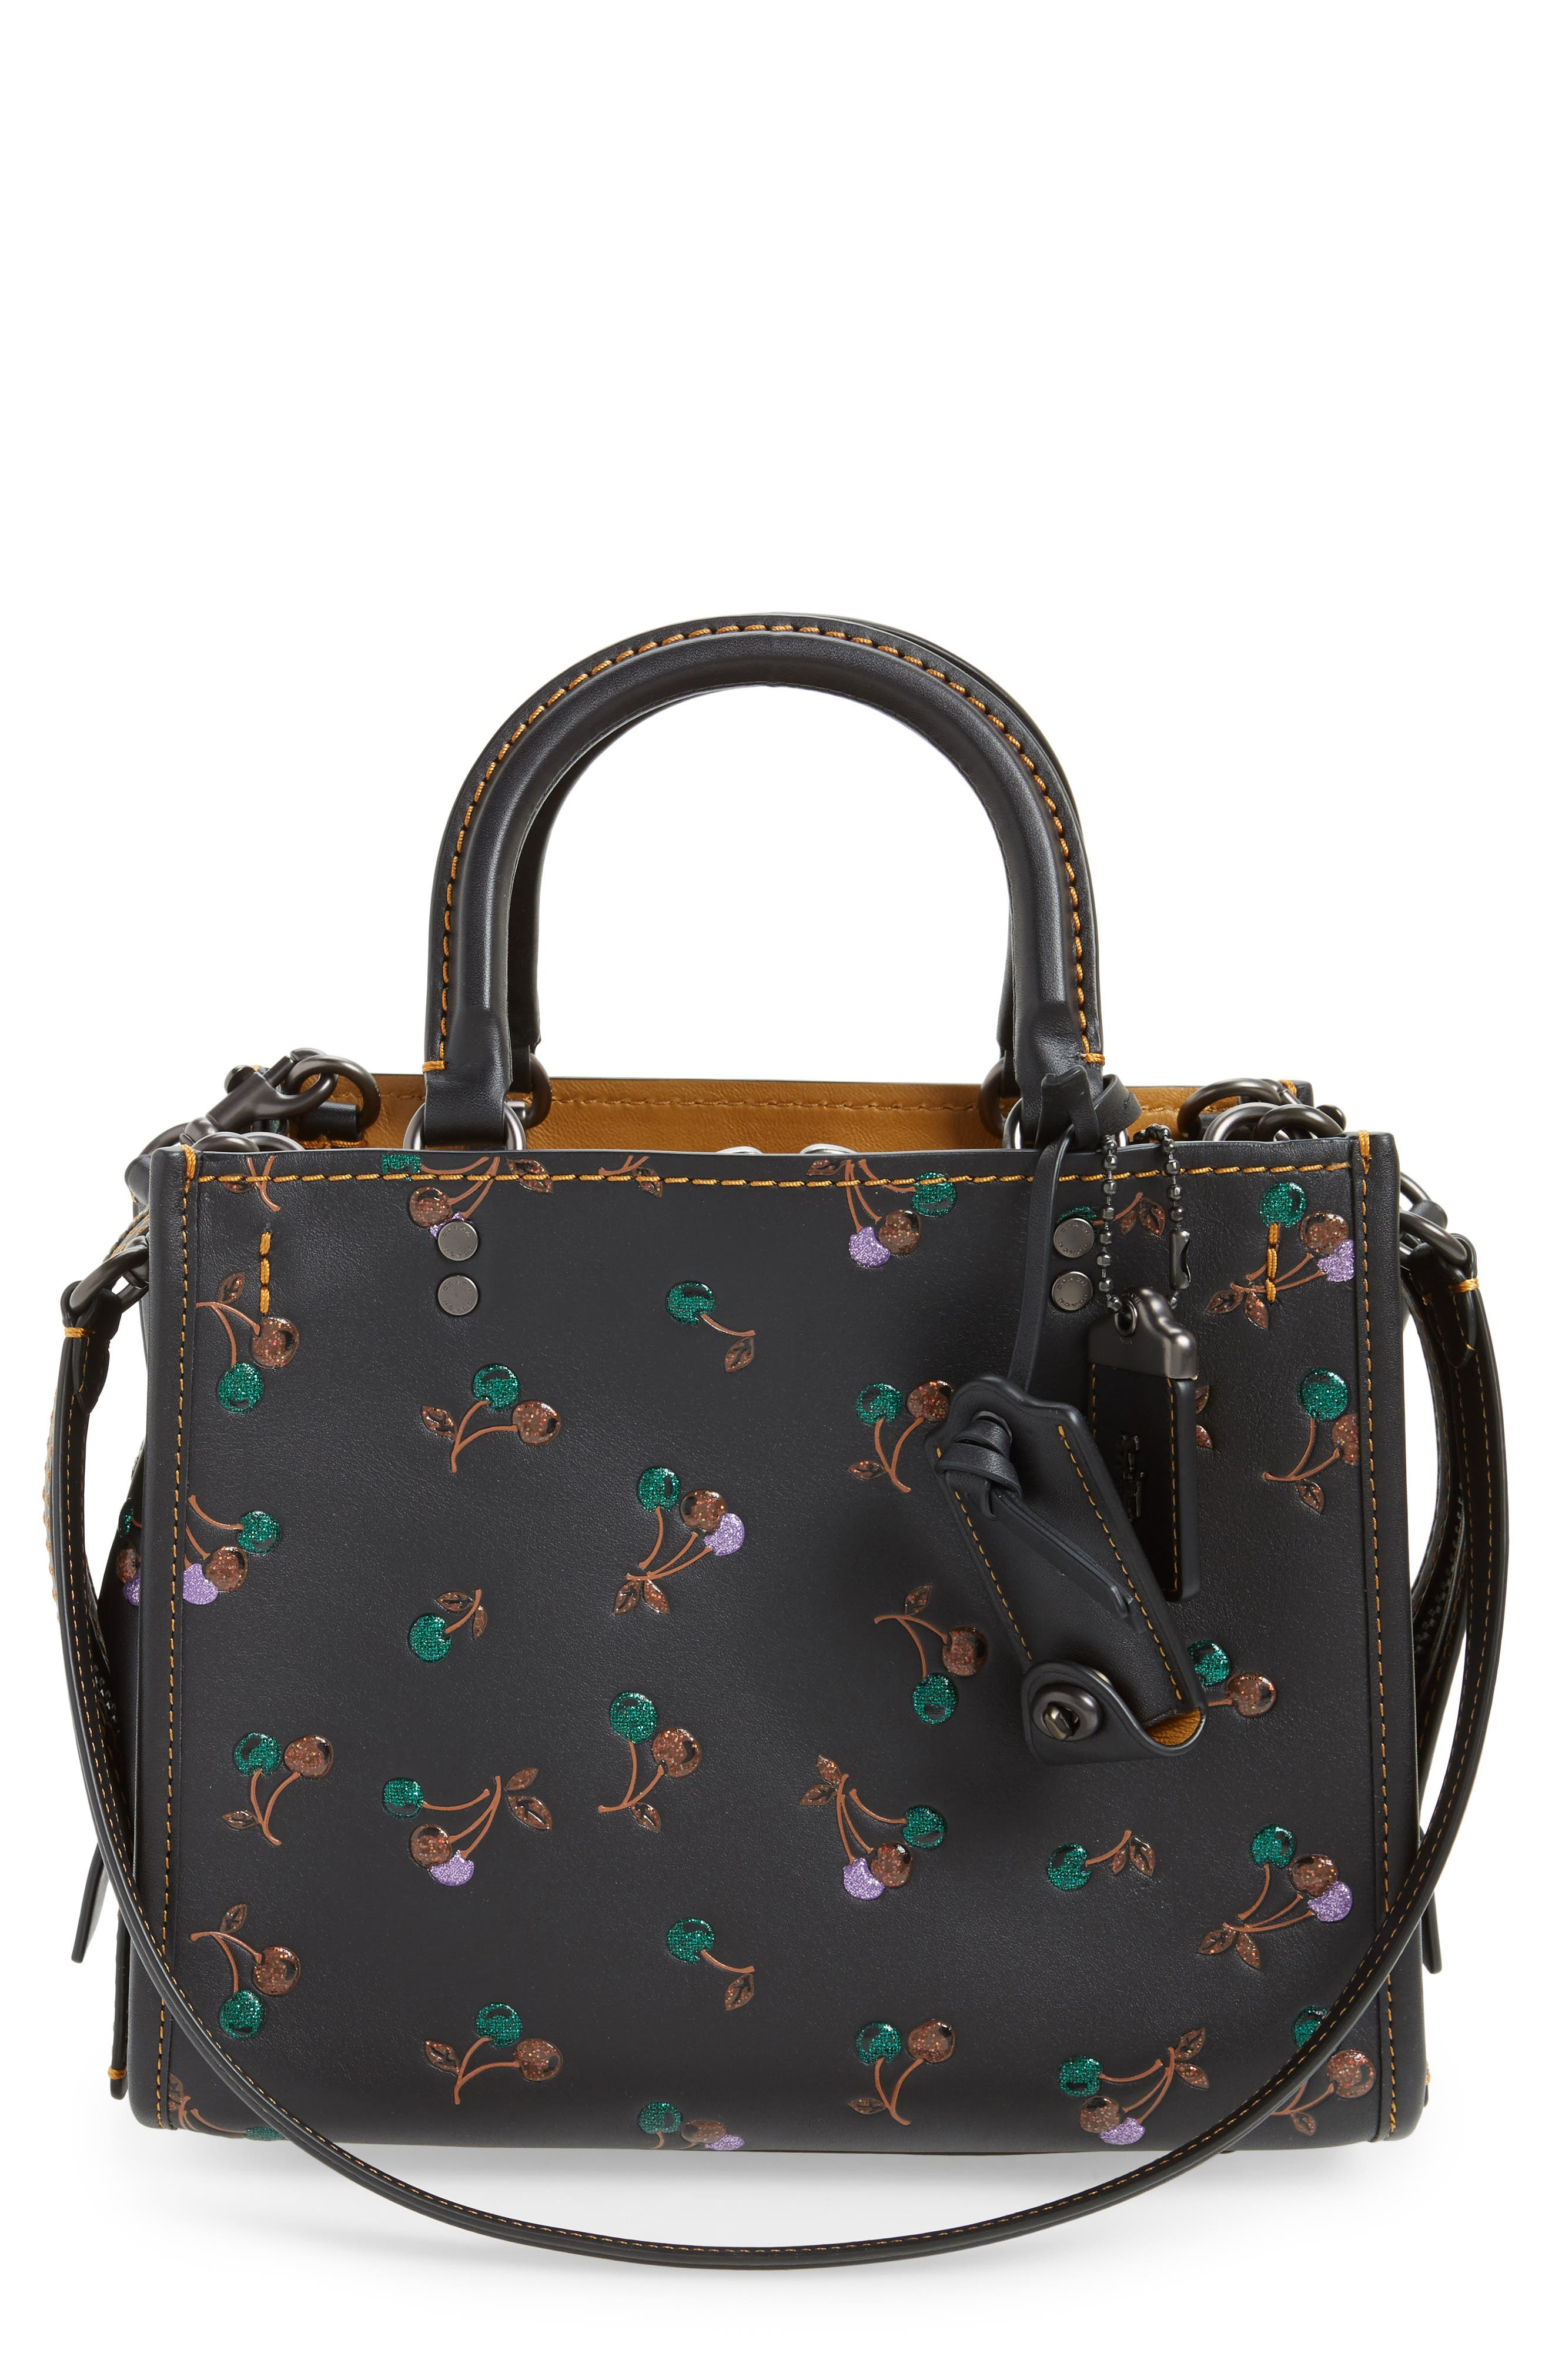 Cherries Rogue 25 Leather Satchel,                         Main,                         color, 001